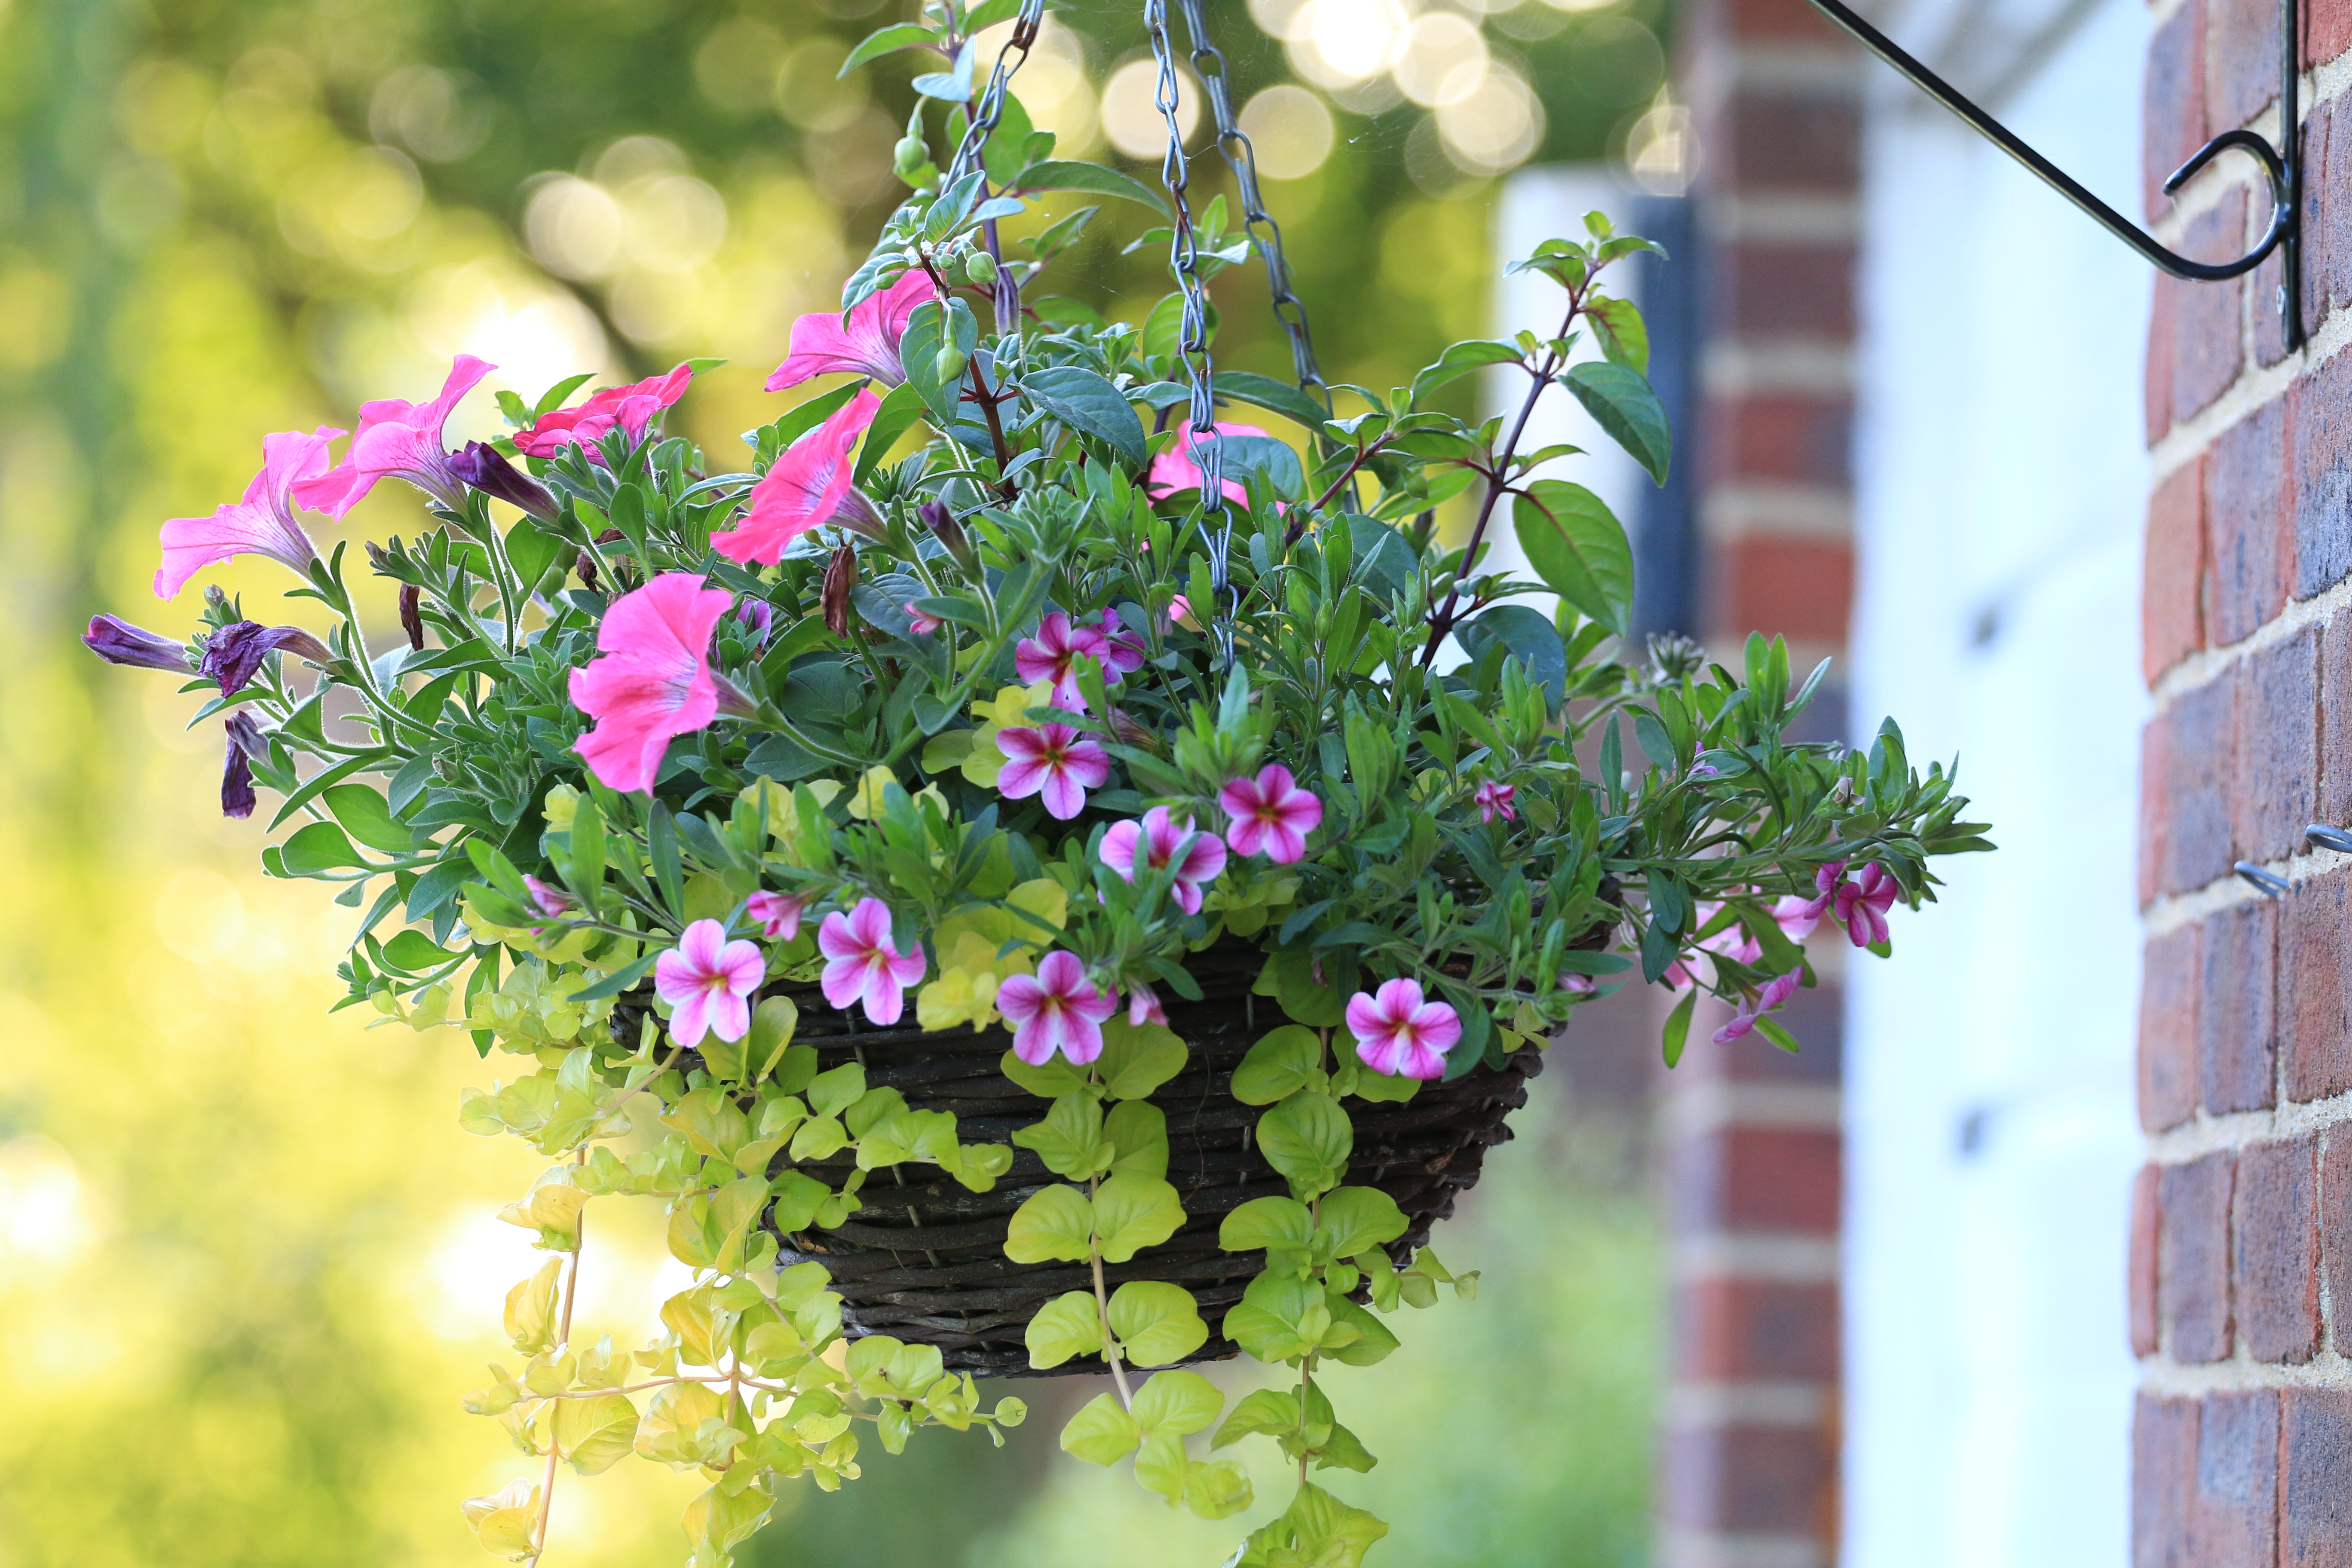 How to Install a Hook for a Hanging Plant Basket | Home Guides | SF Gate